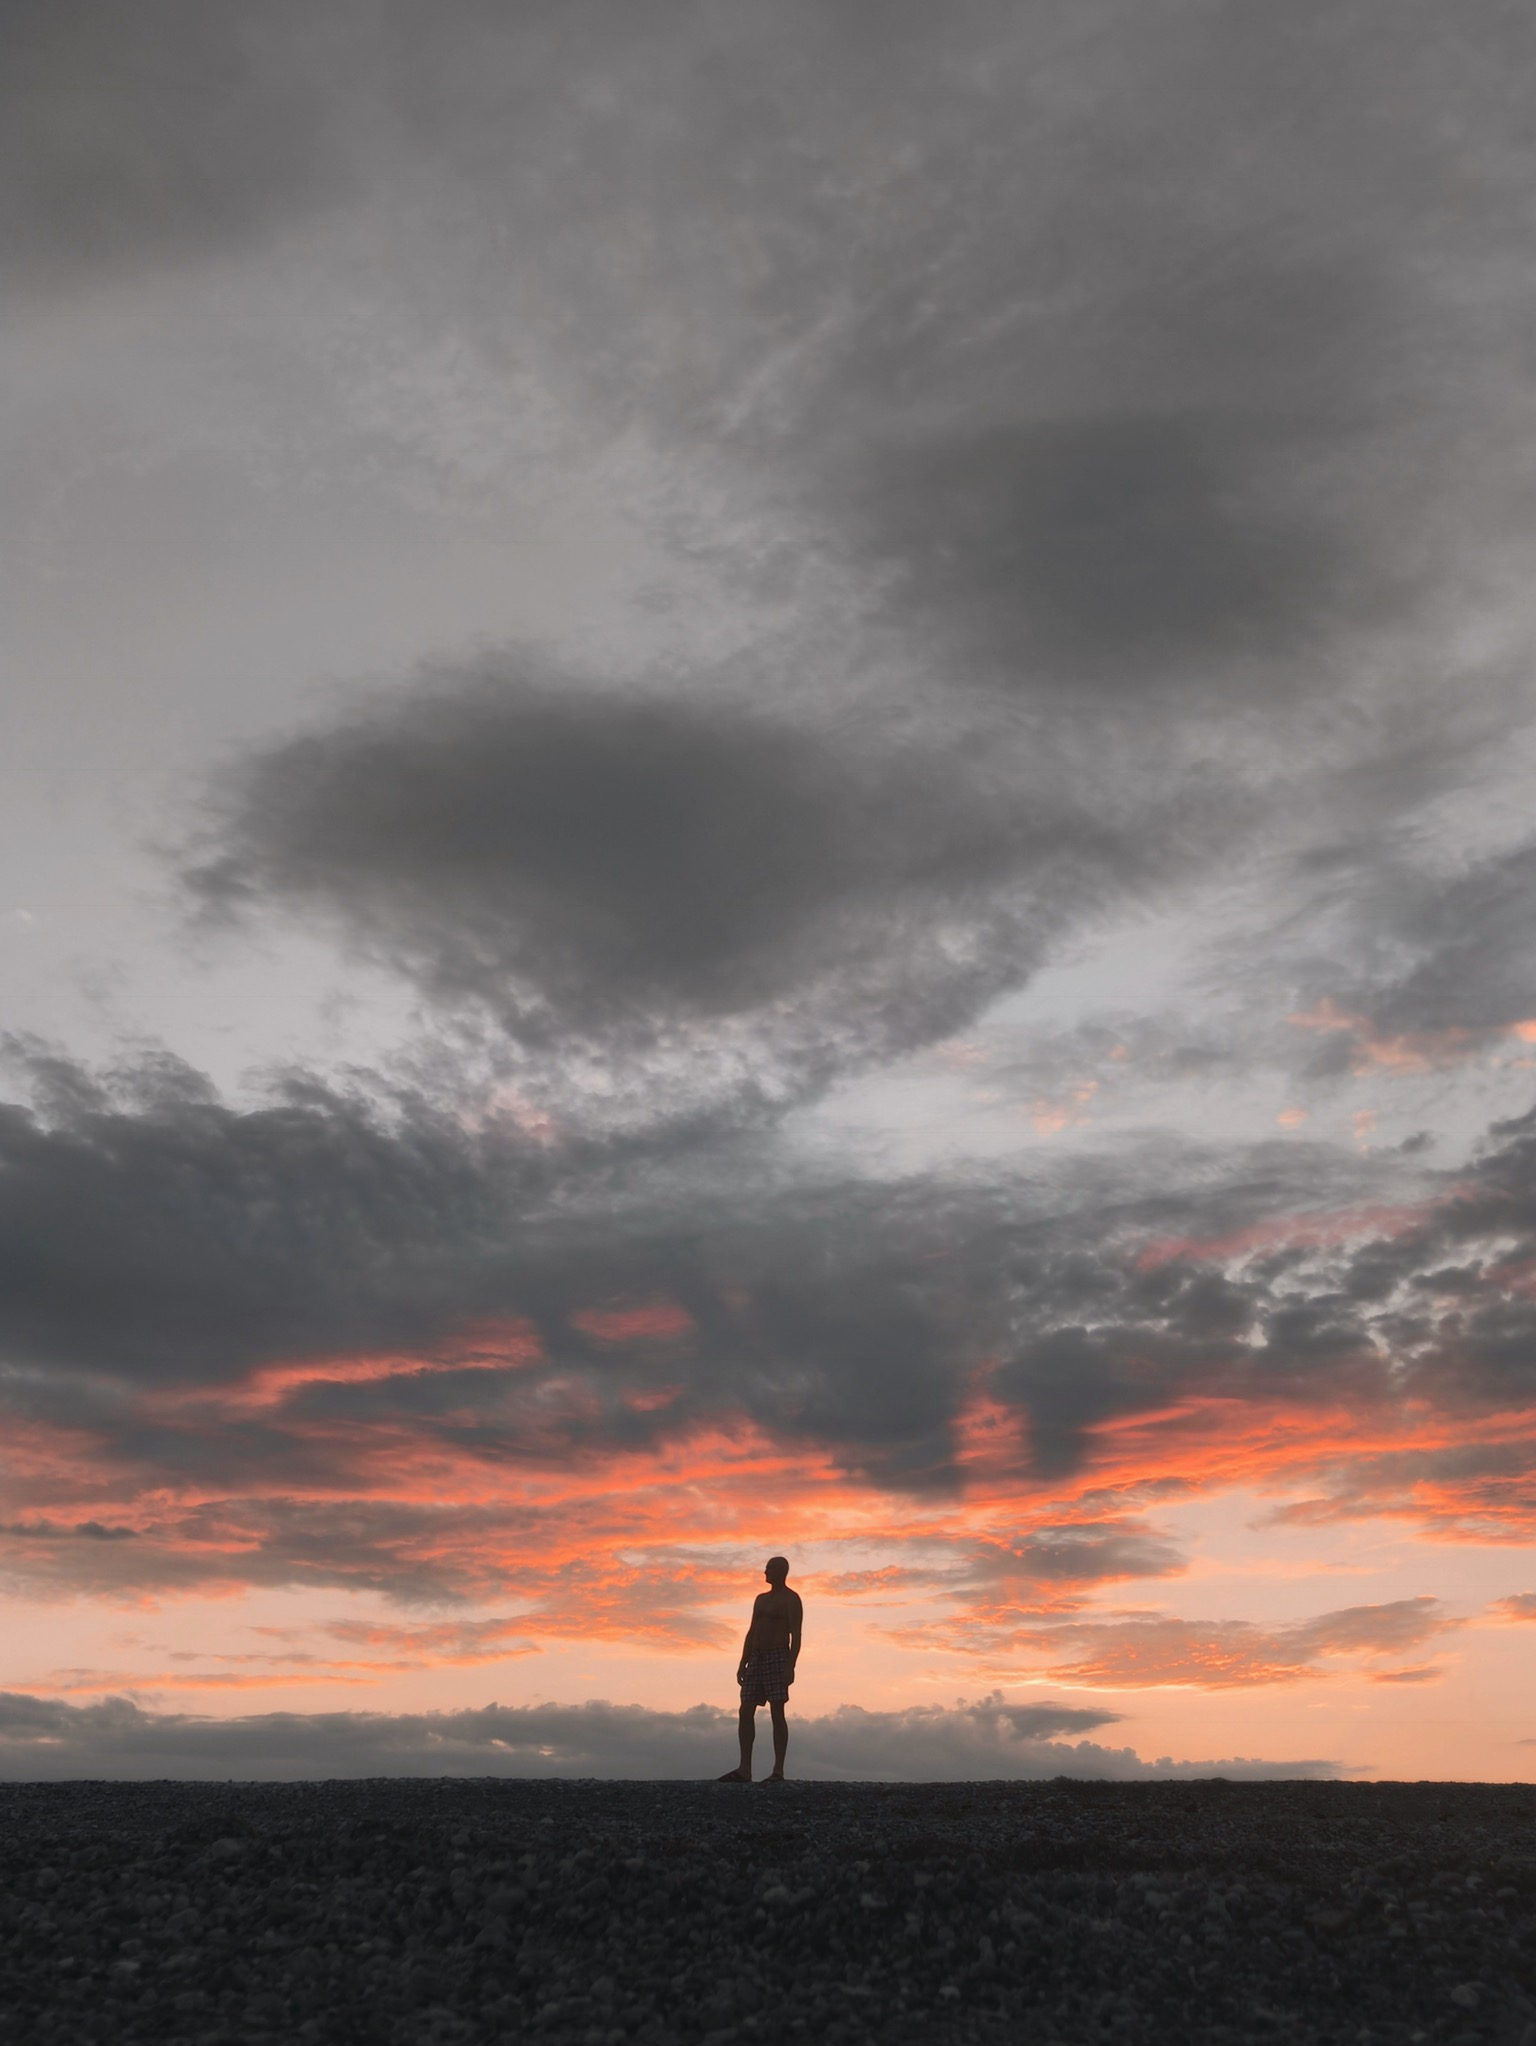 Black Iphone X Wallpaper White Clouds And Blue Sky During Golden Hour 183 Free Stock